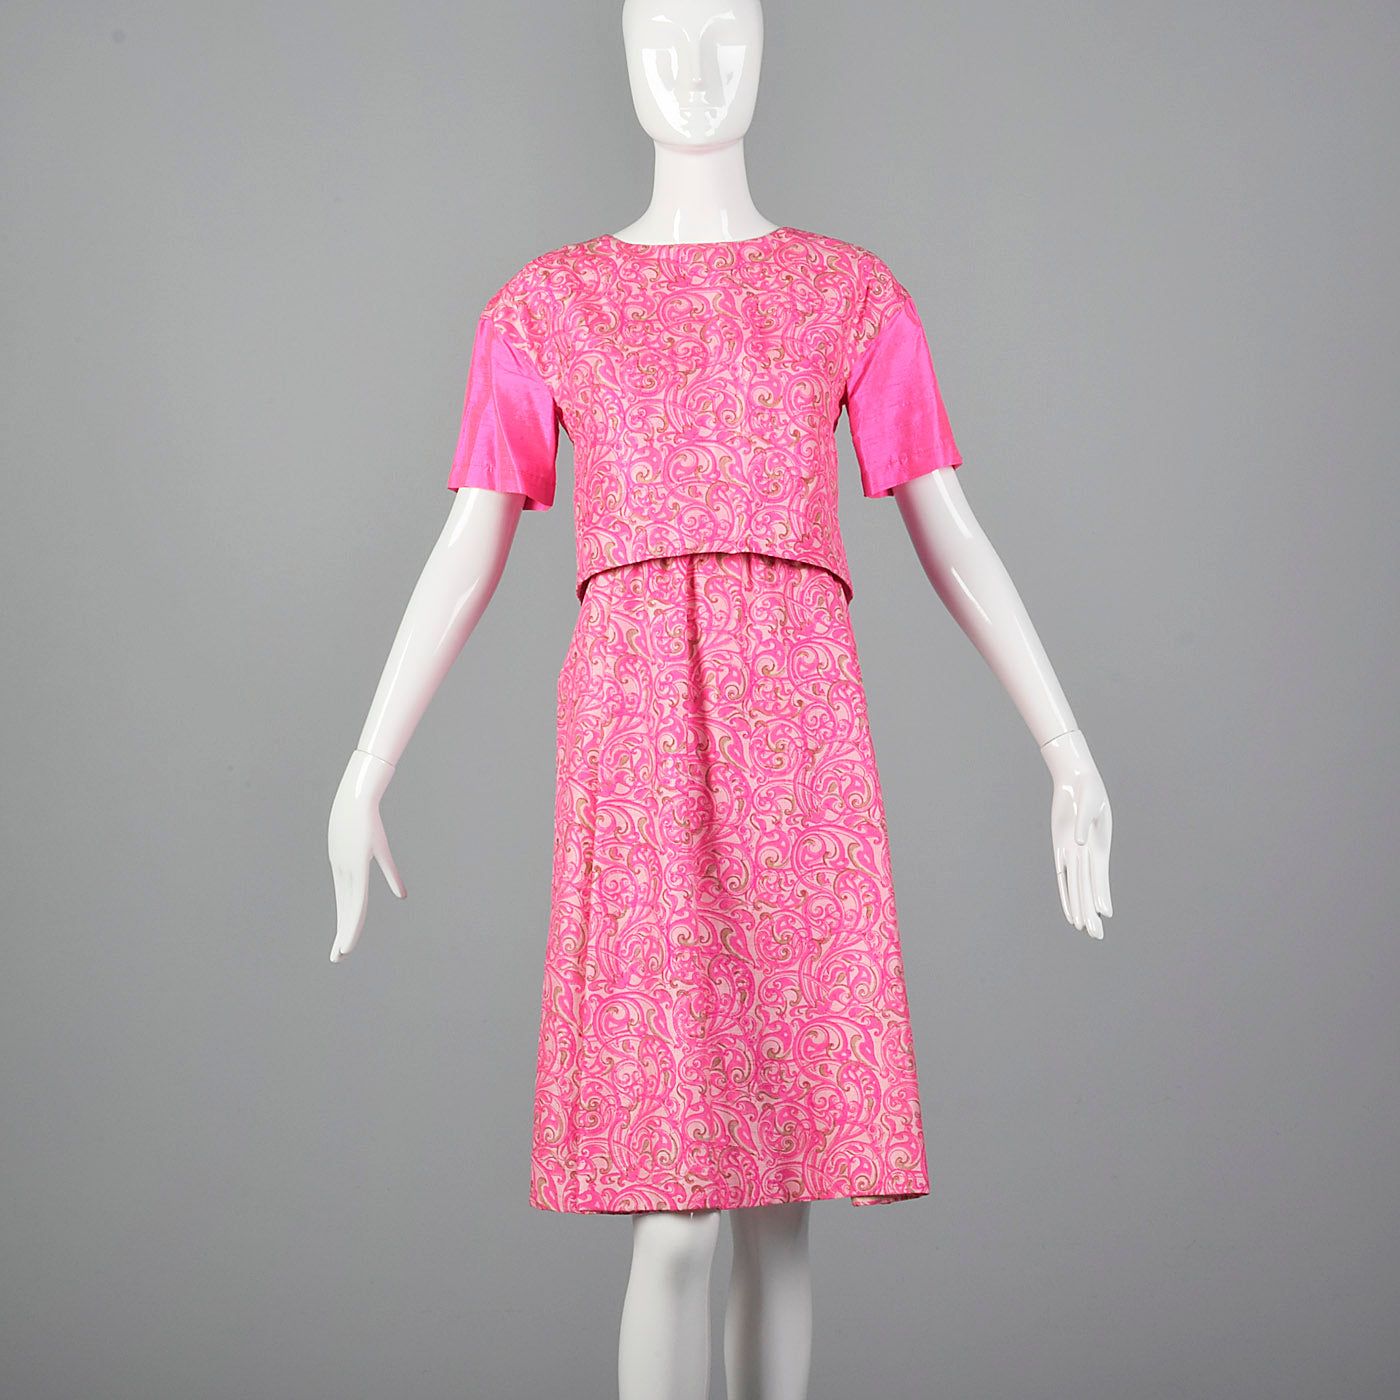 1960s Hot Pink Dress Set